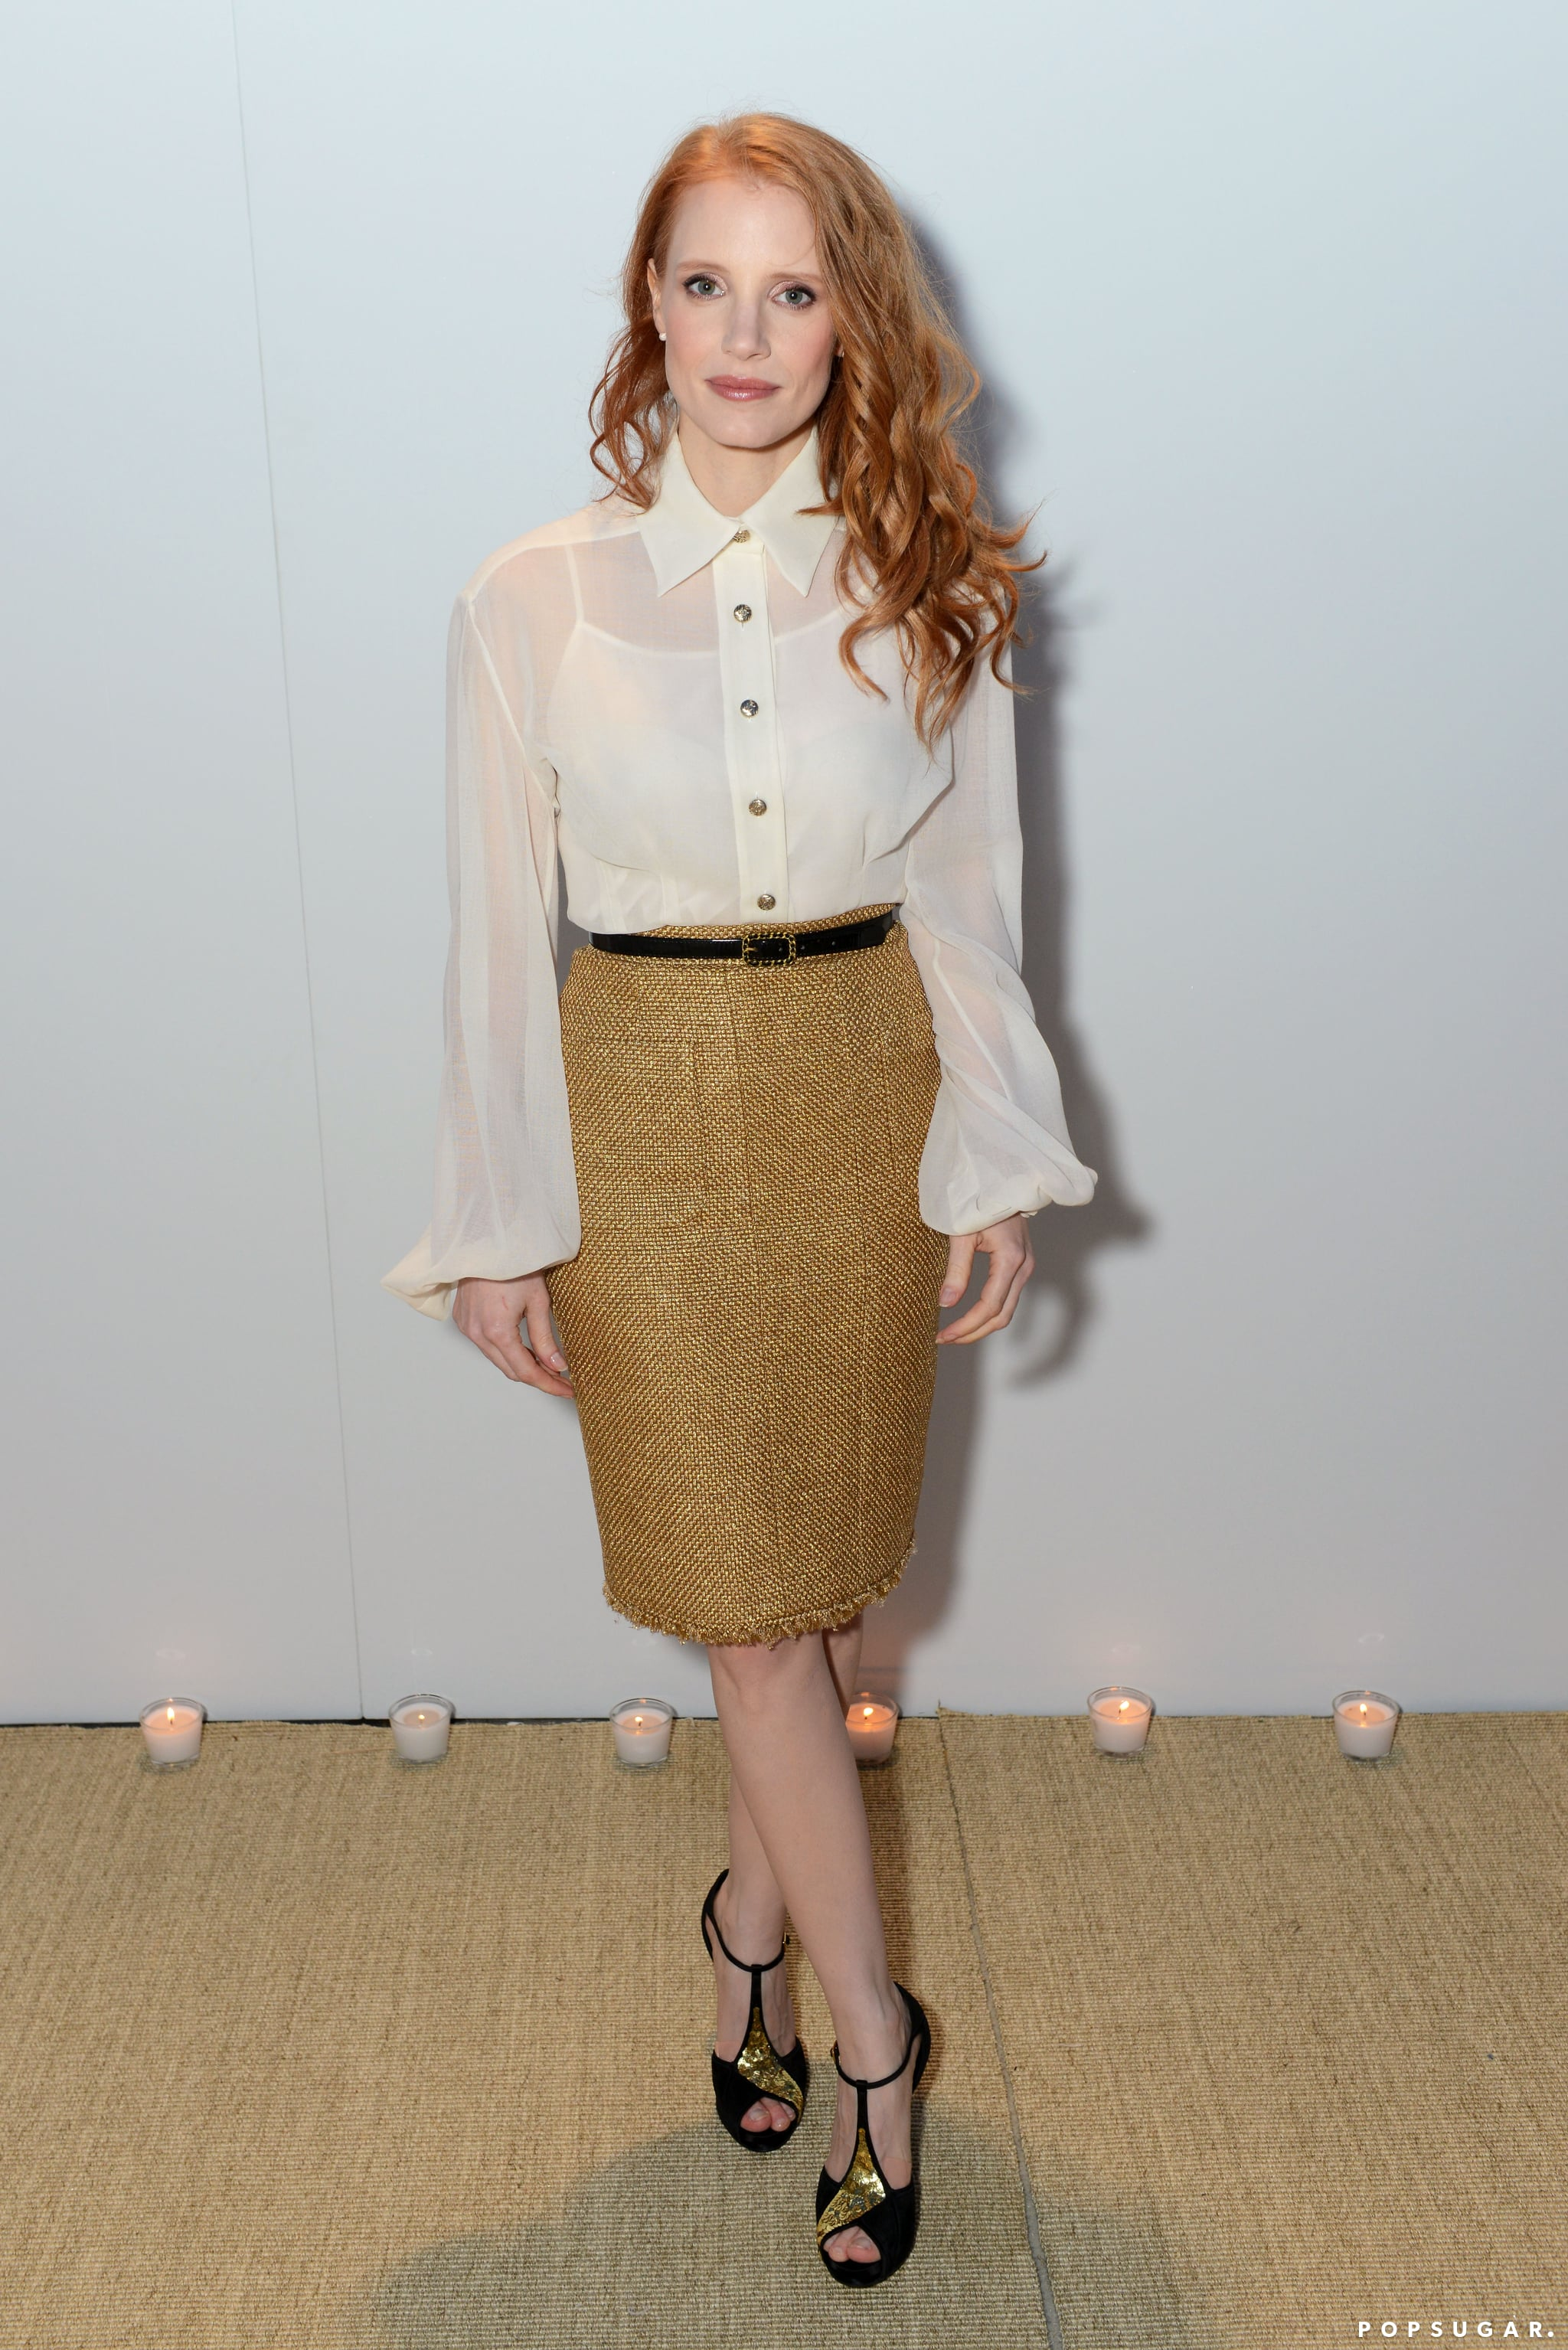 Jessica Chastain attended the Vanity Fair and Chanel dinner in Cannes on Sunday night.